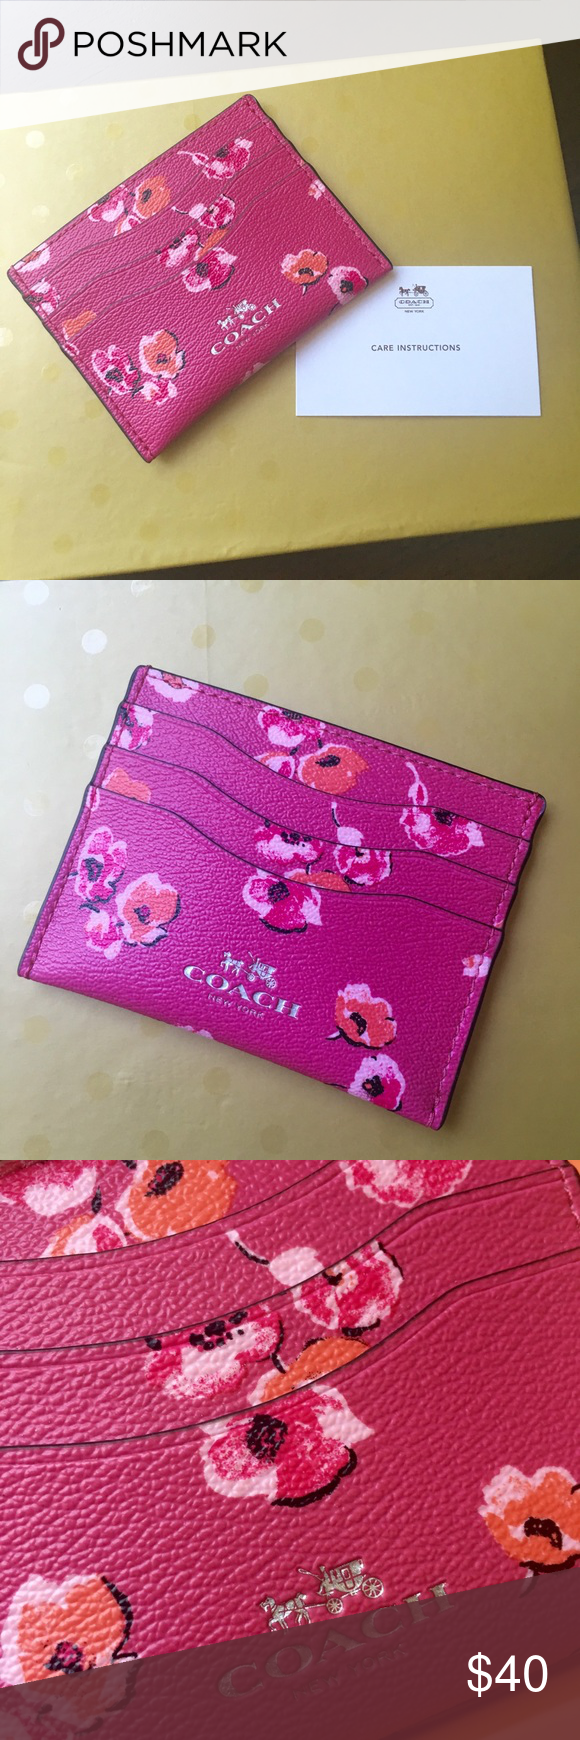 Coach Floral Card Case Accepting Reasonable Offers ✨ Brand New; Coach  Wildflower Card Case *